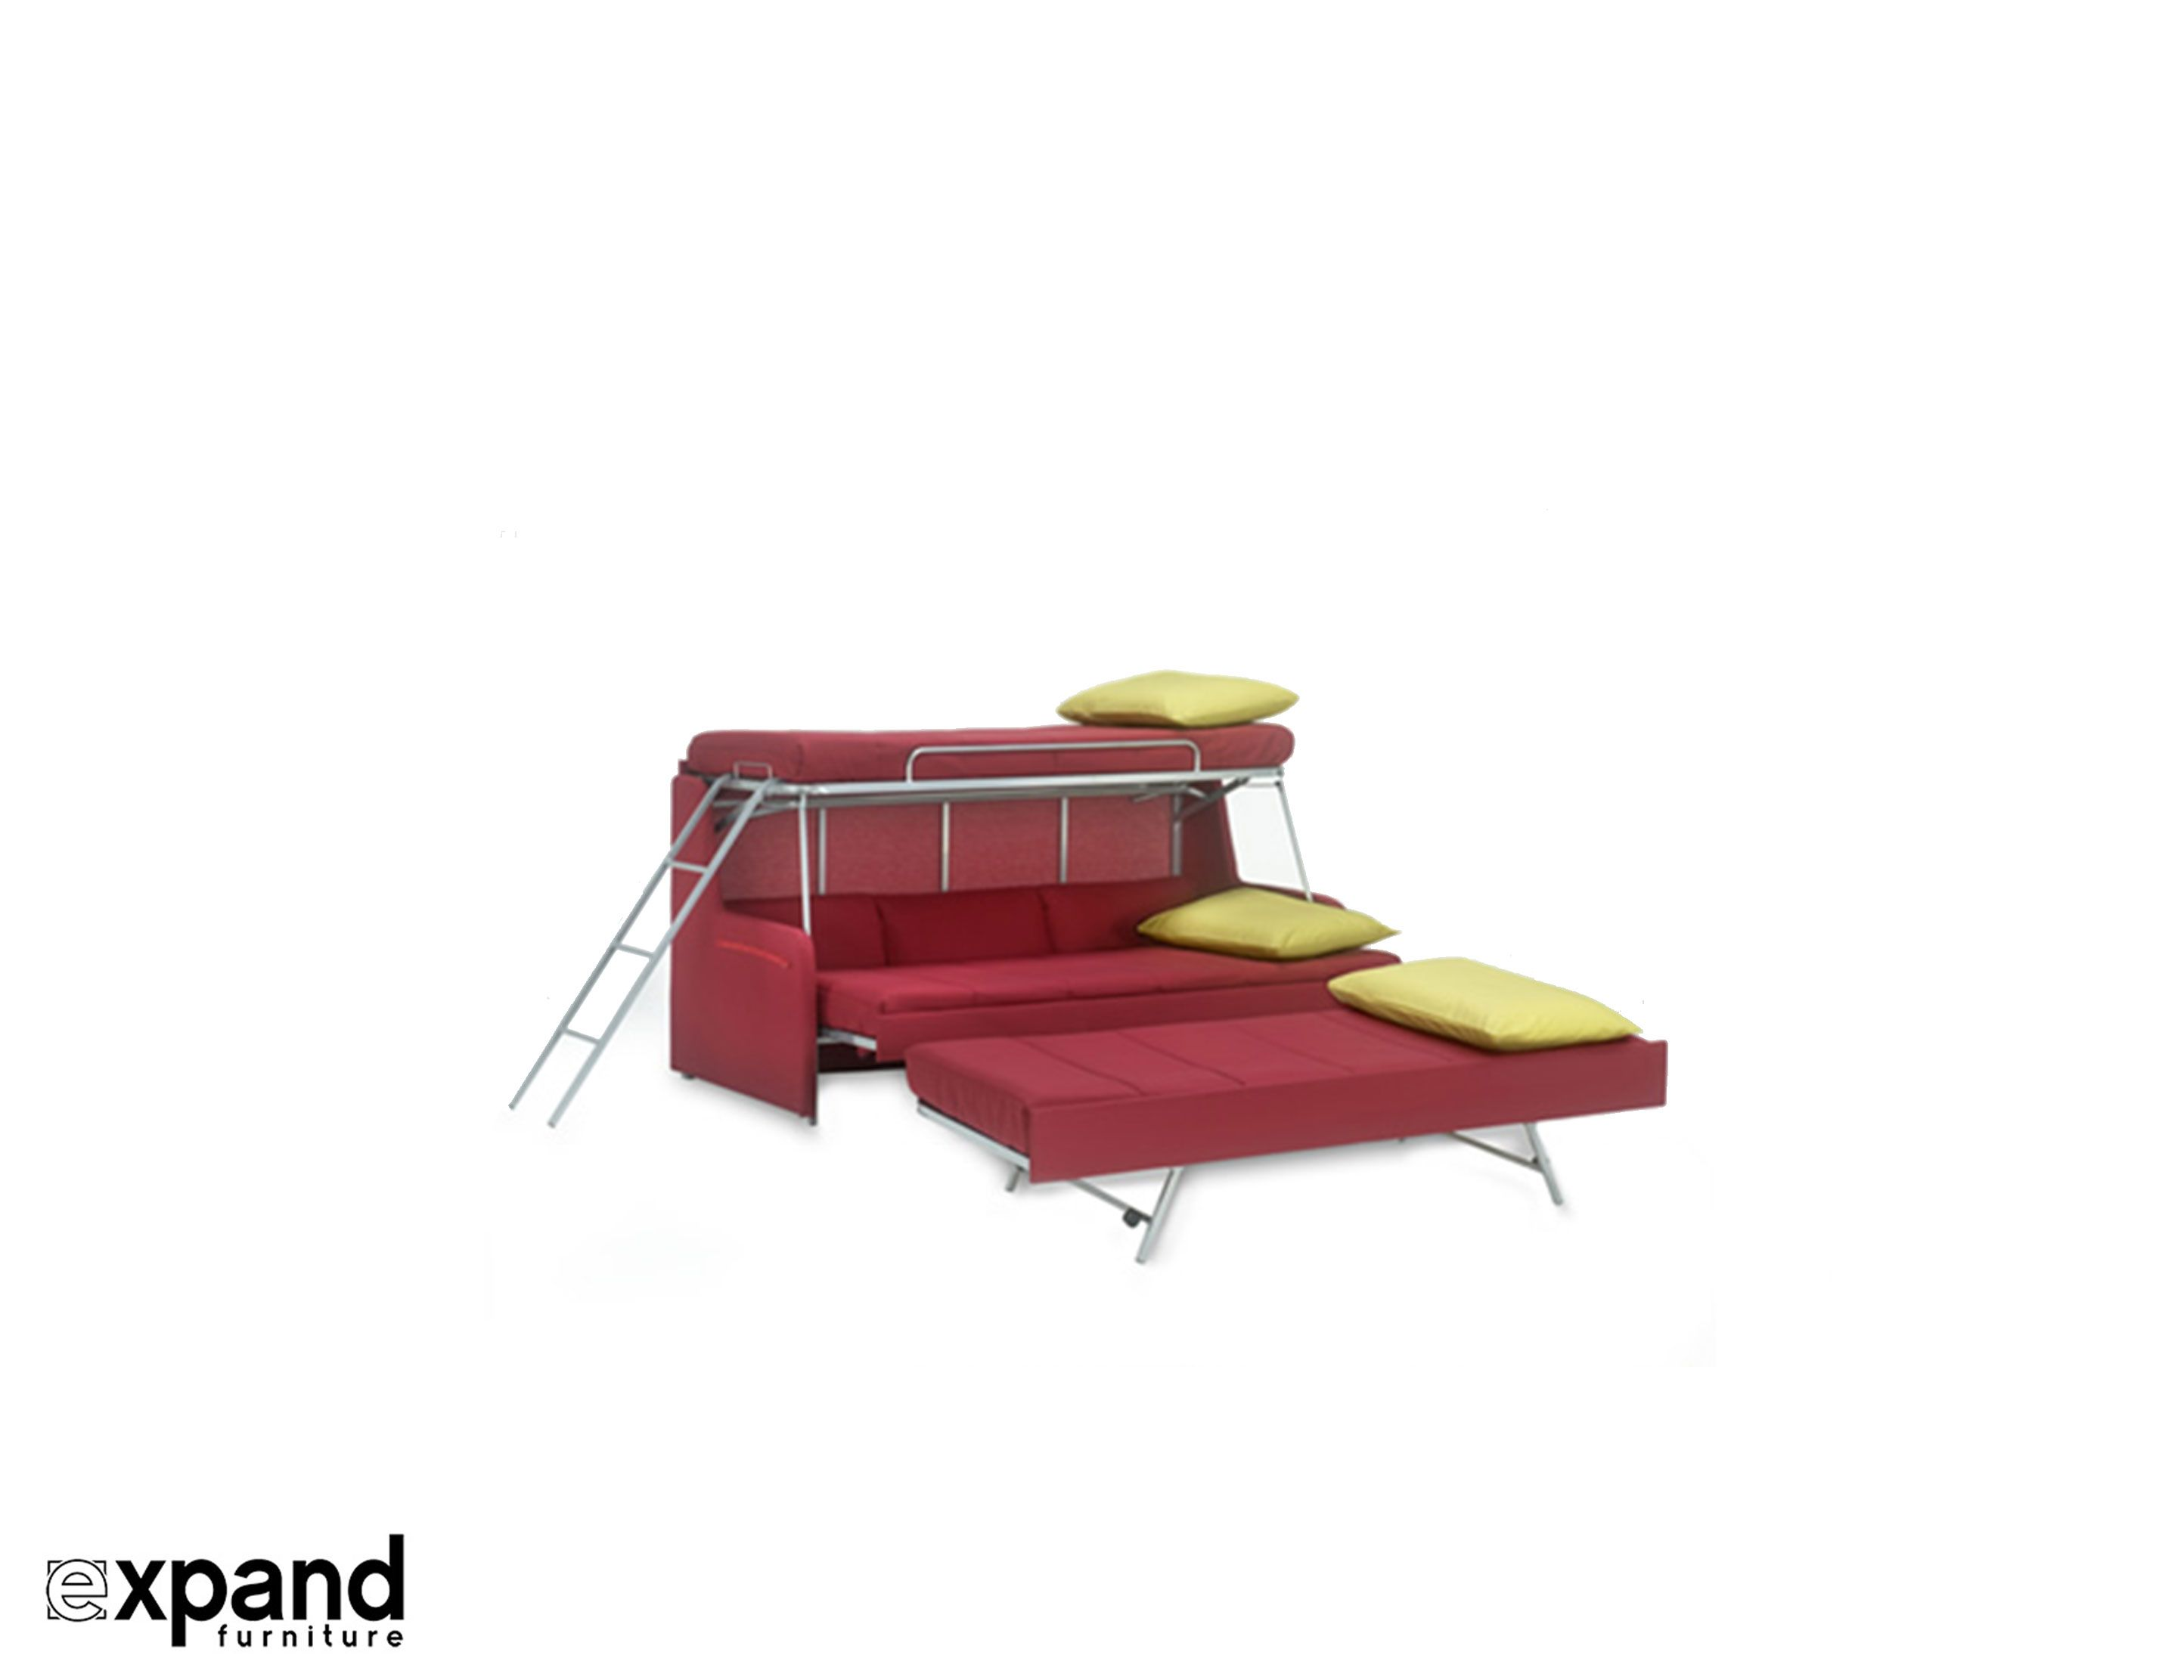 Sofa Bunk Bed For The Home Bunk Beds Twin Bunk Beds Sofa